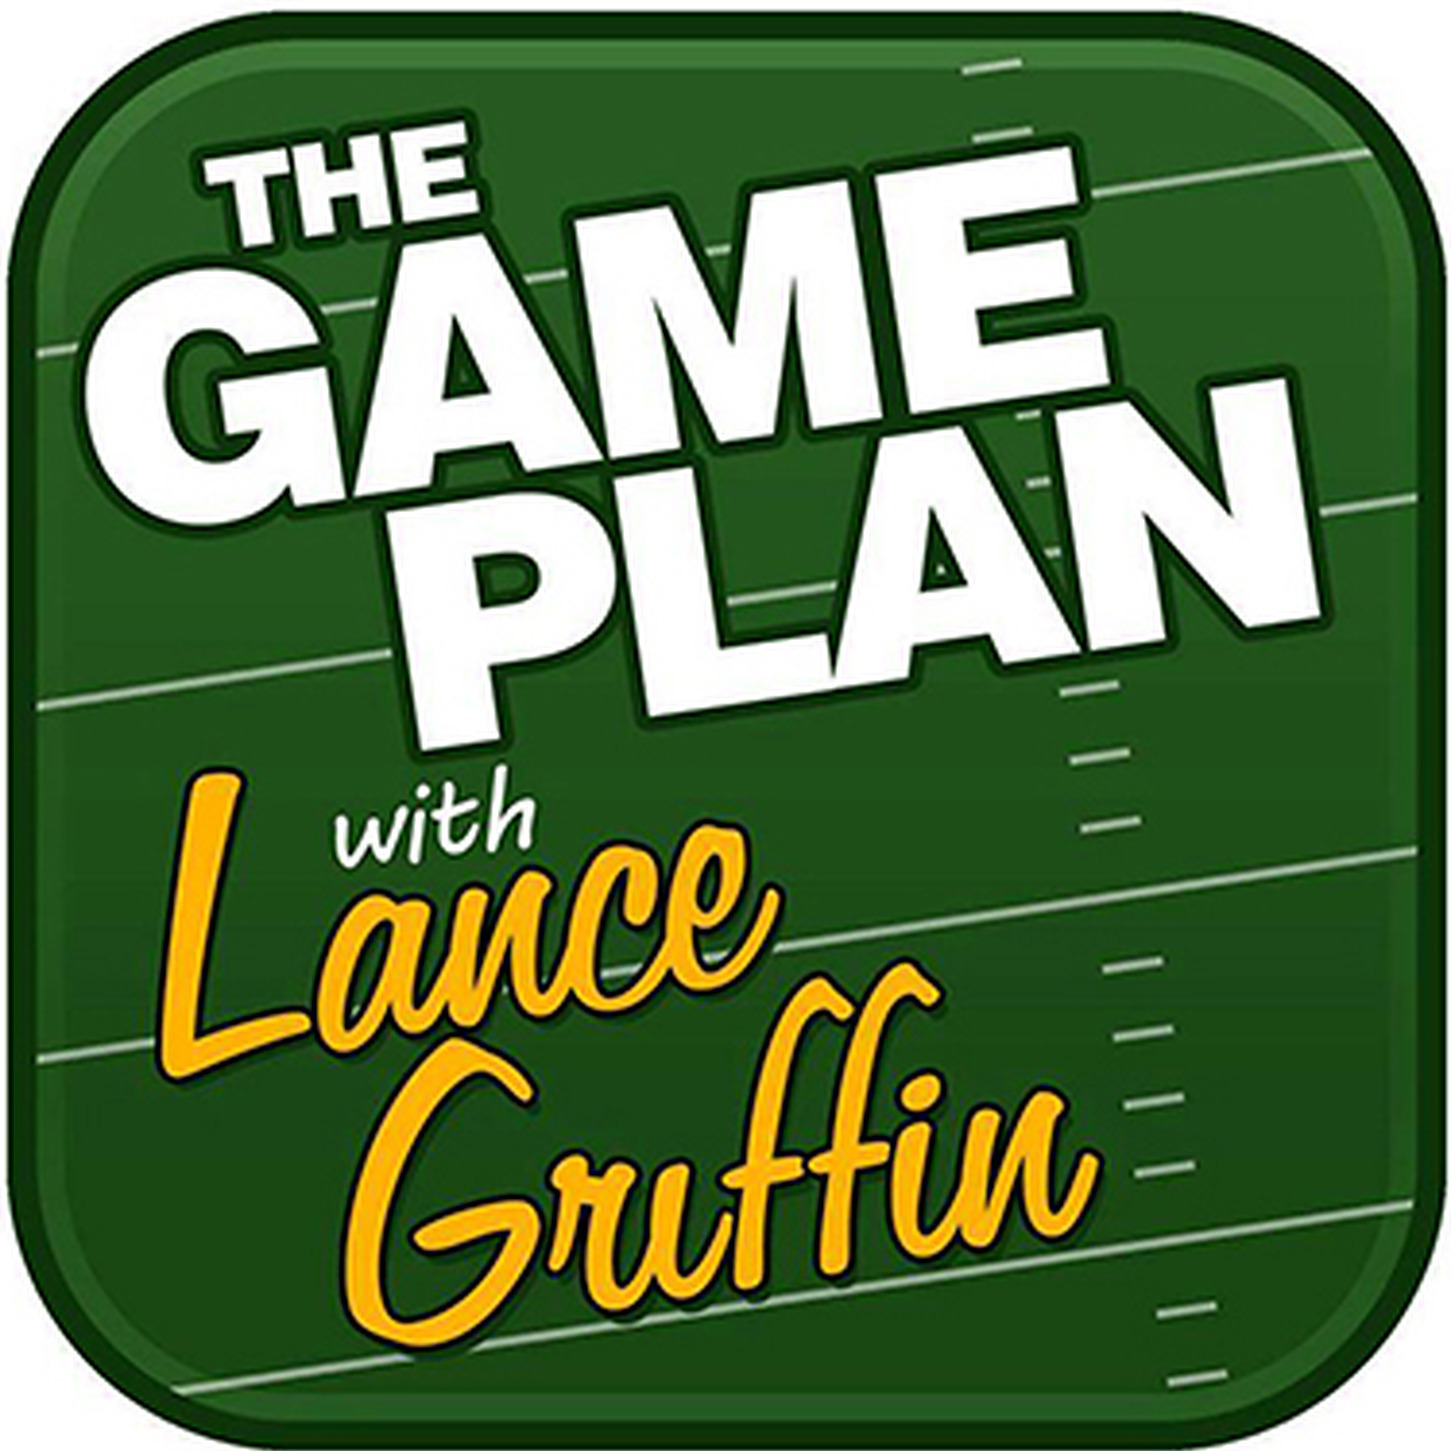 TUESDAY: The Game Plan